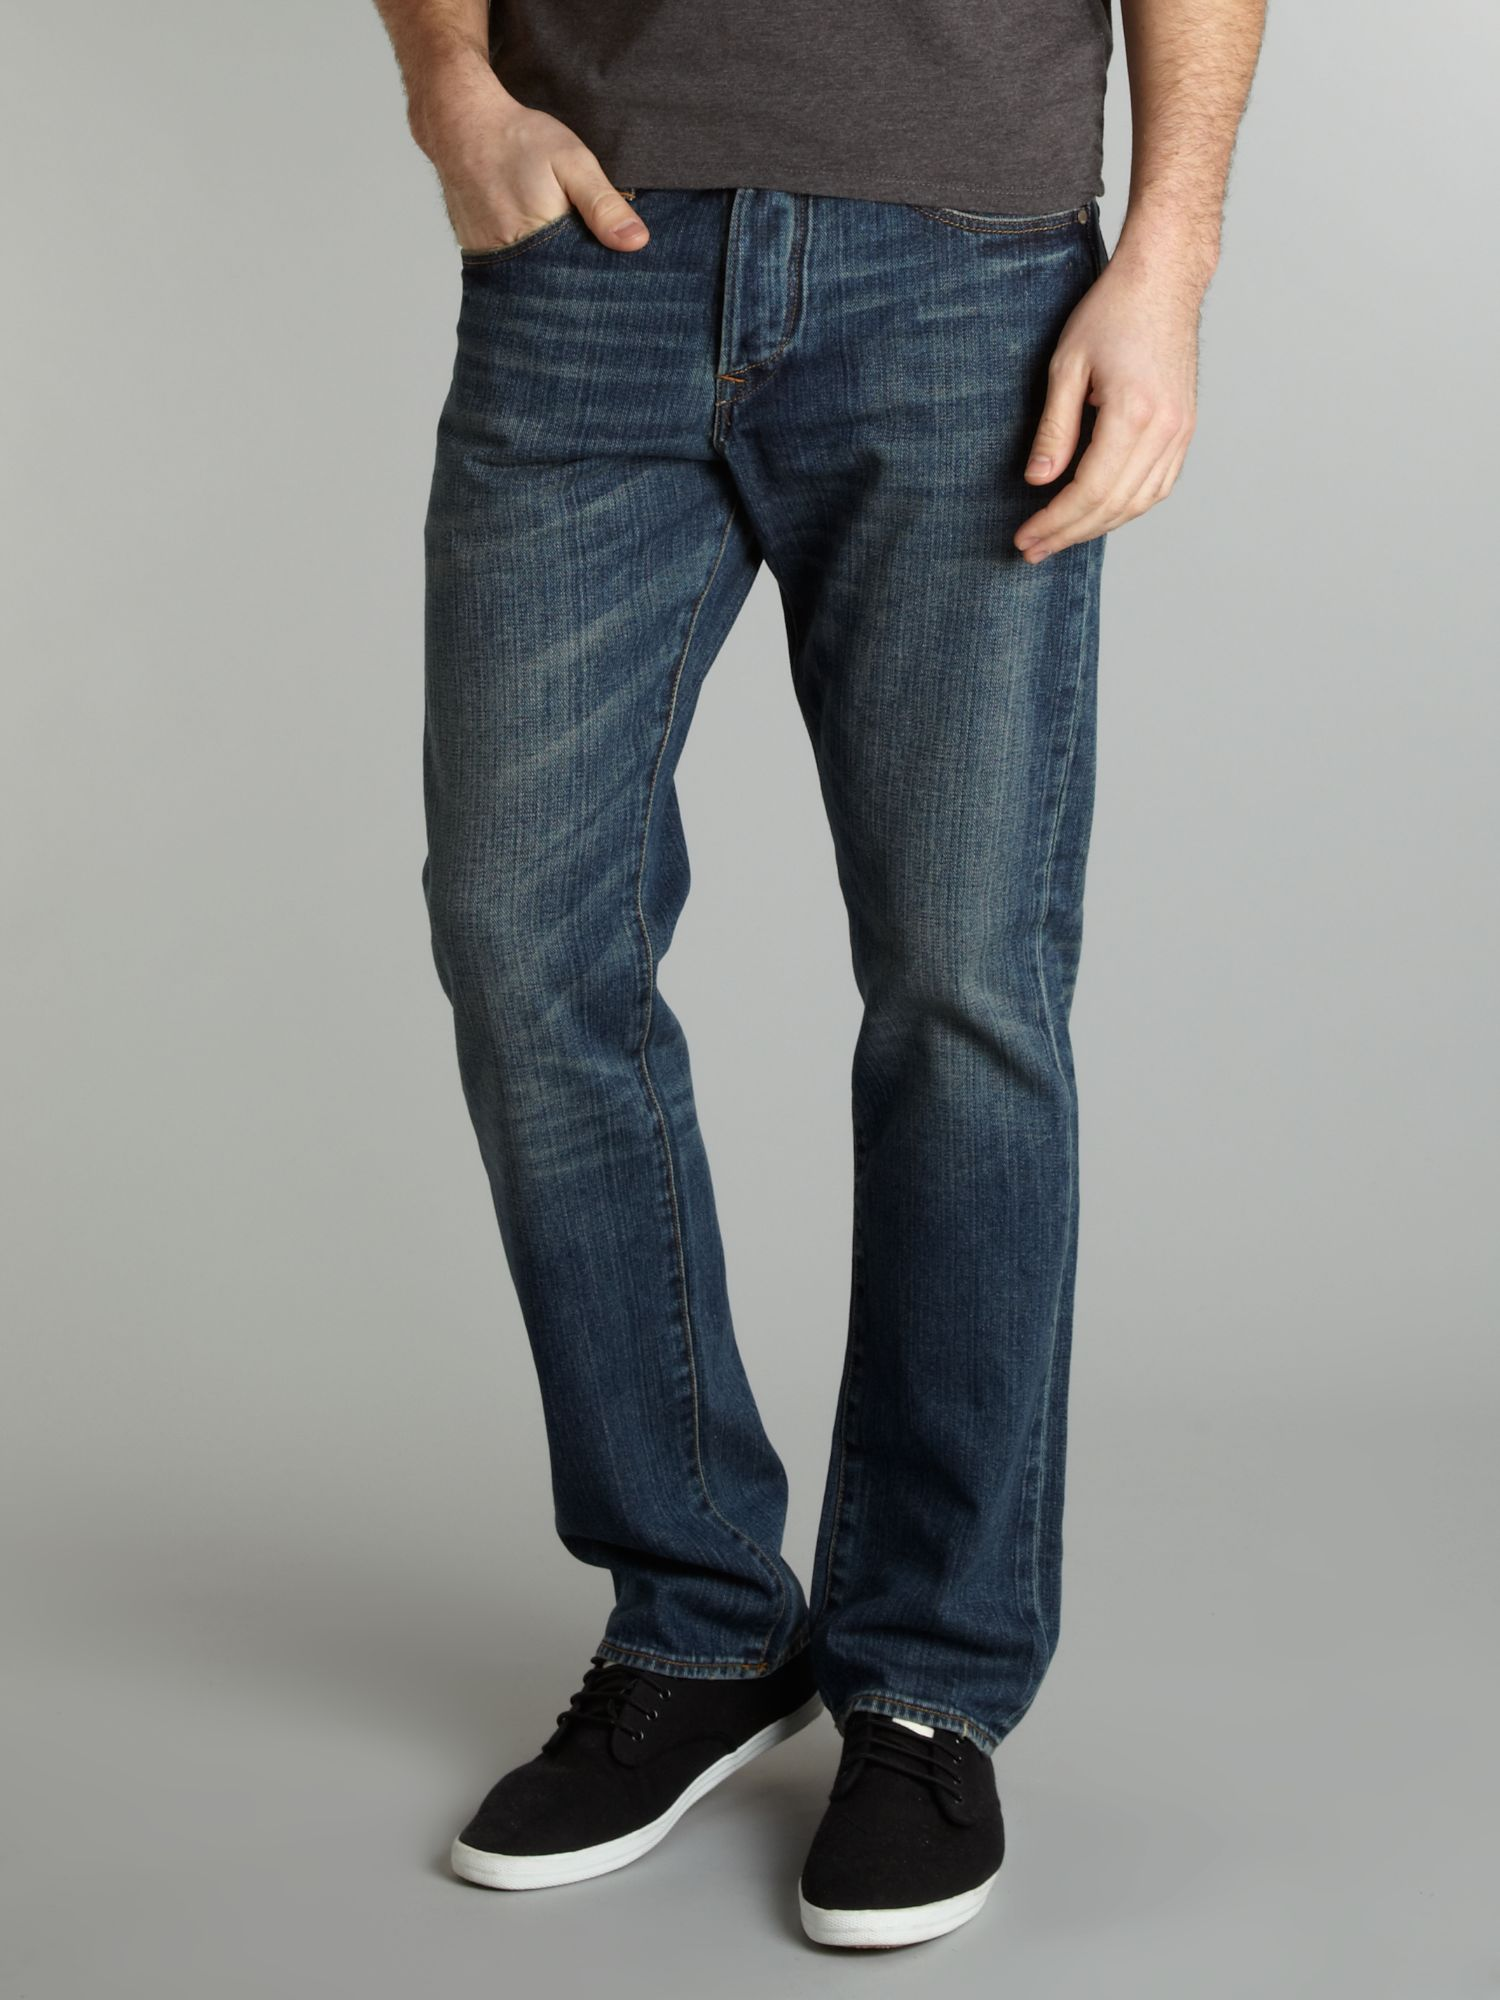 Regular straight fit dark denim jeans